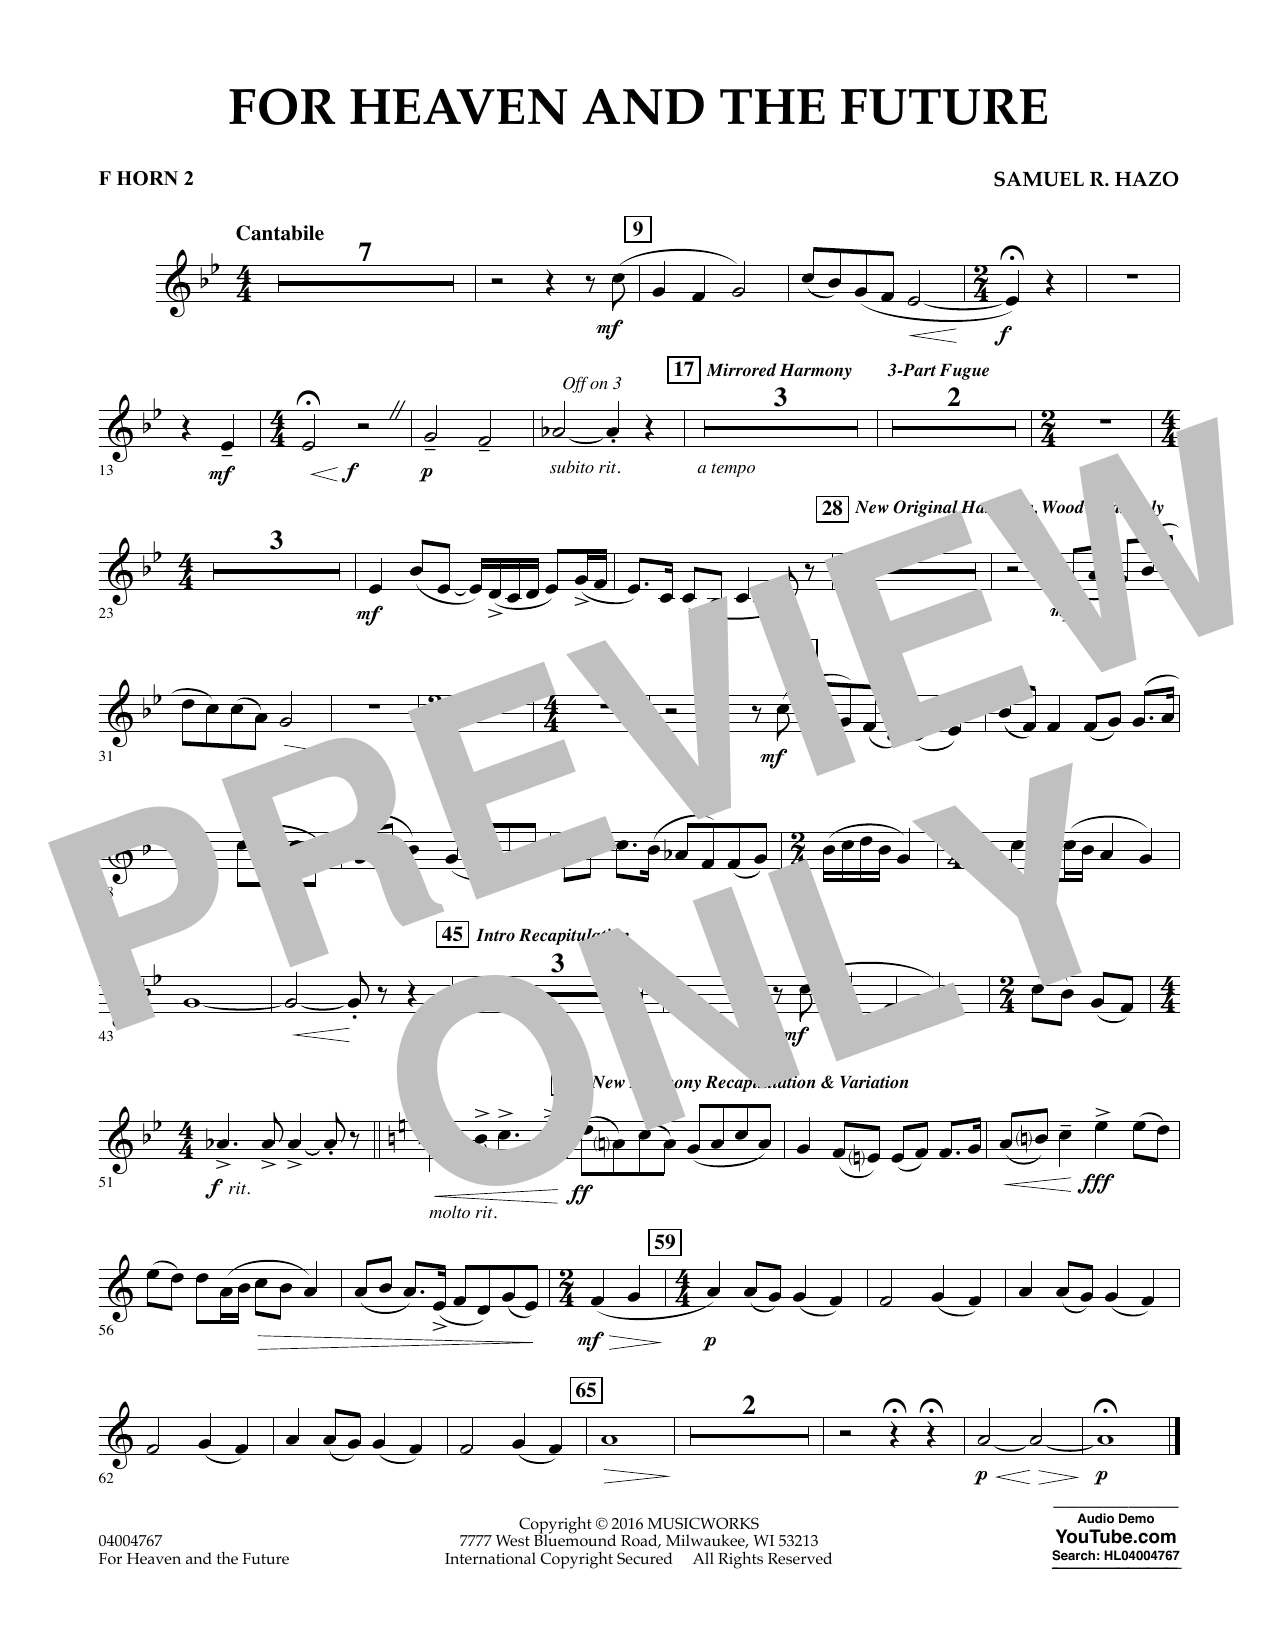 For Heaven and the Future - F Horn 2 (Concert Band)